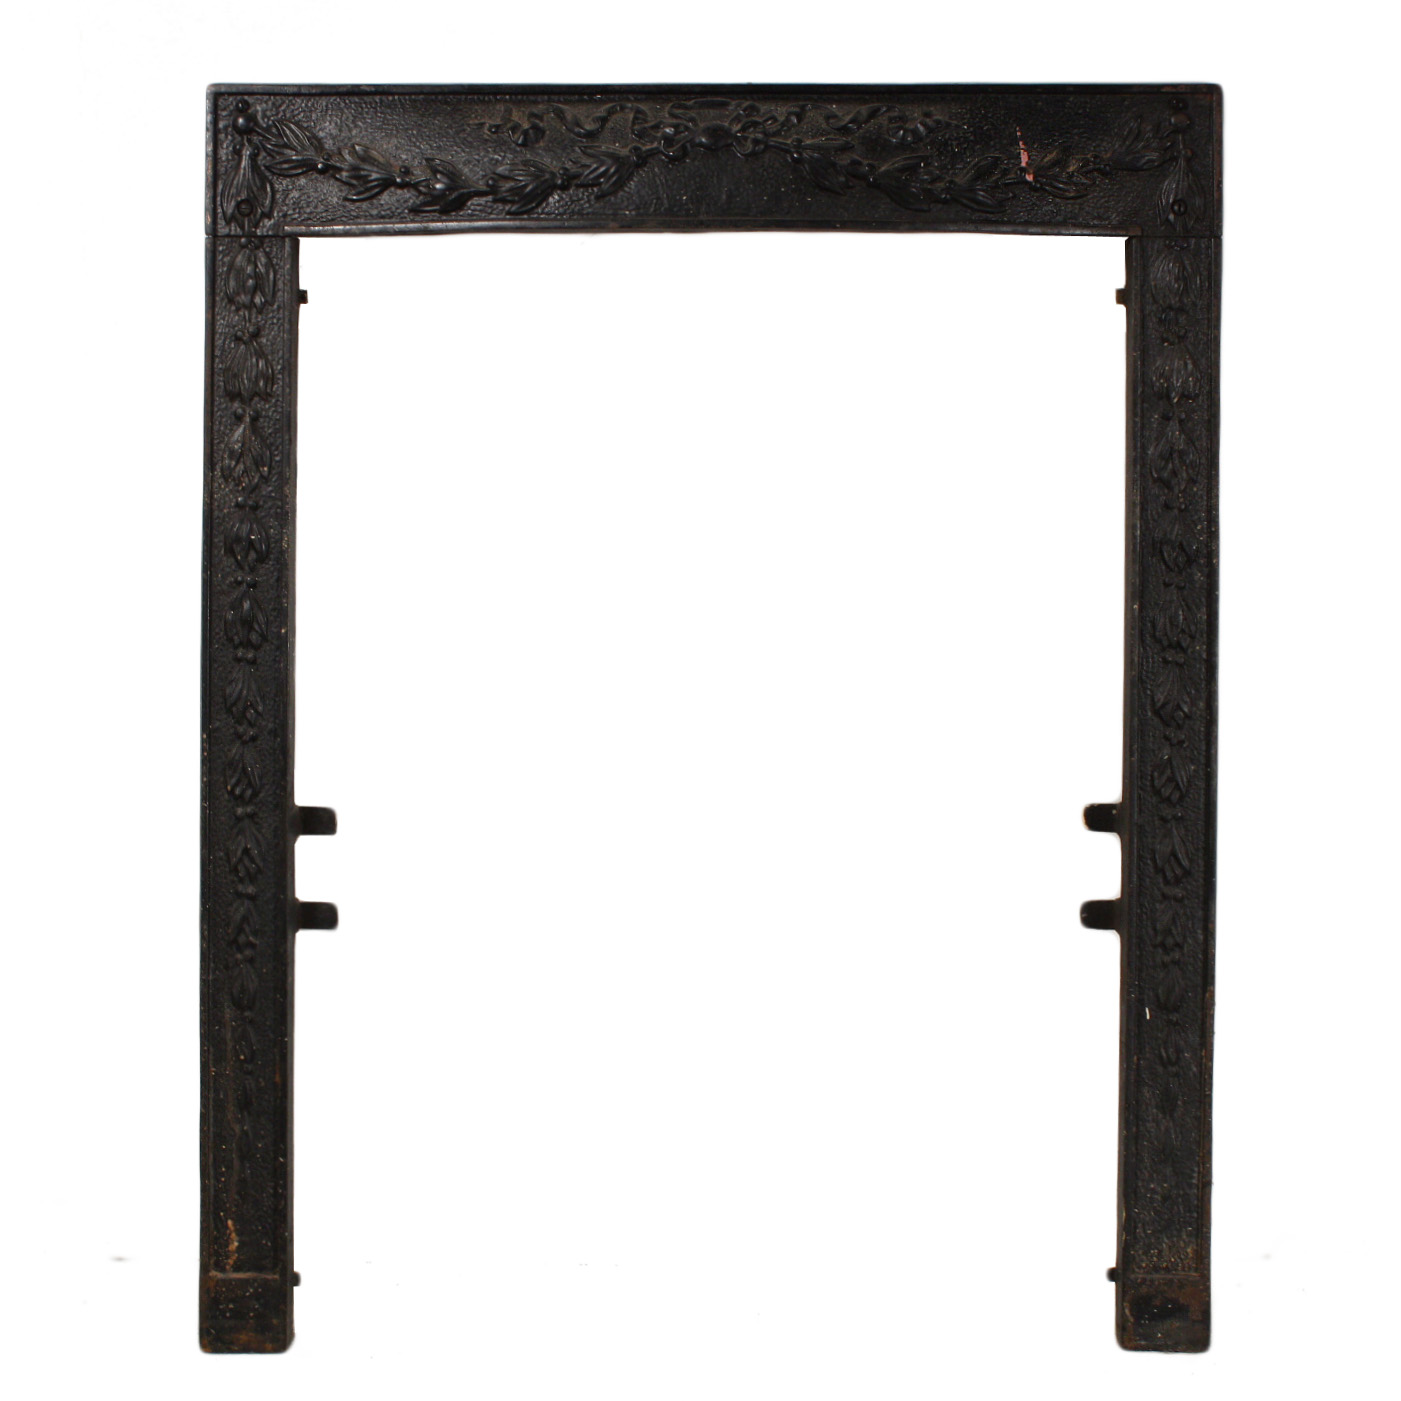 Dating cast iron fireplace trammel 7